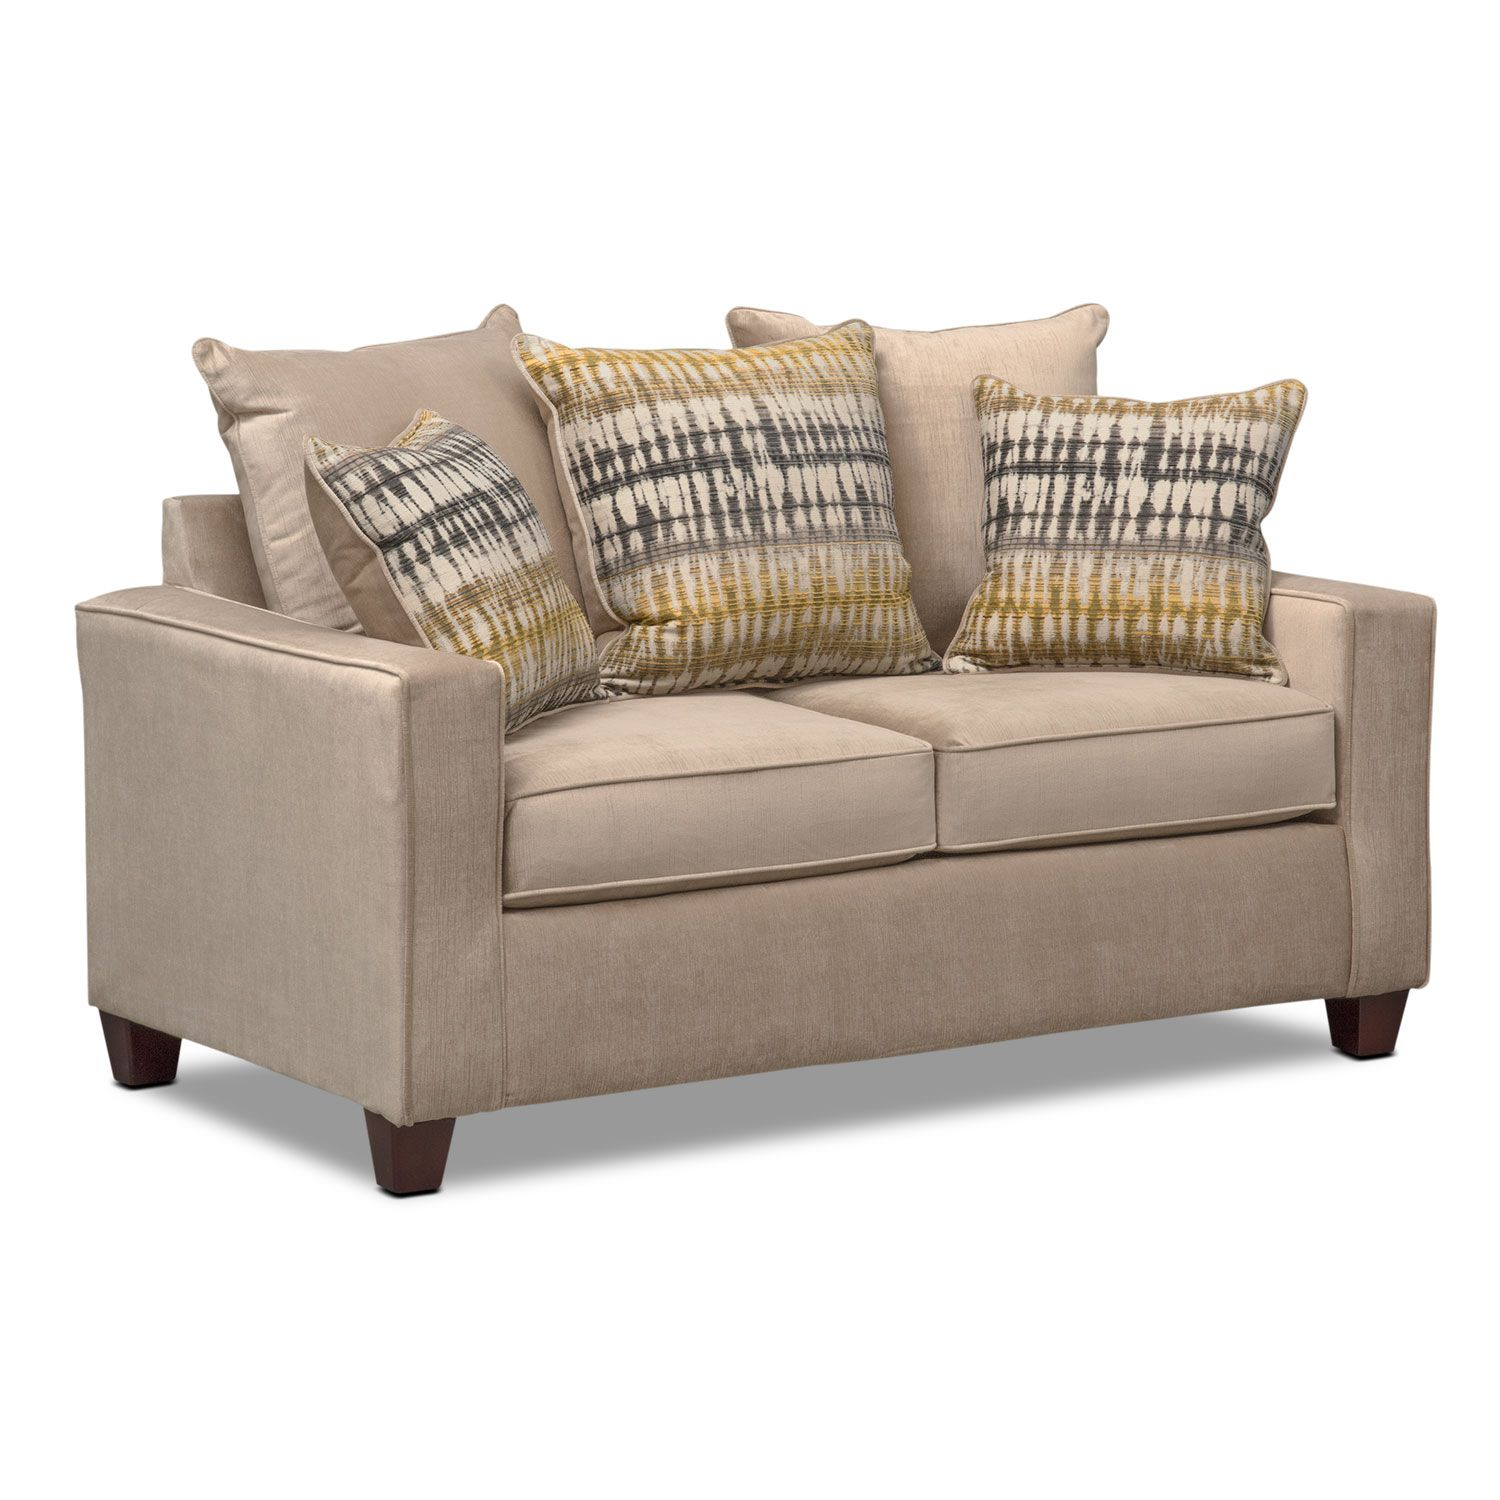 Living room furniture bryden sofa loveseat and chair set beige